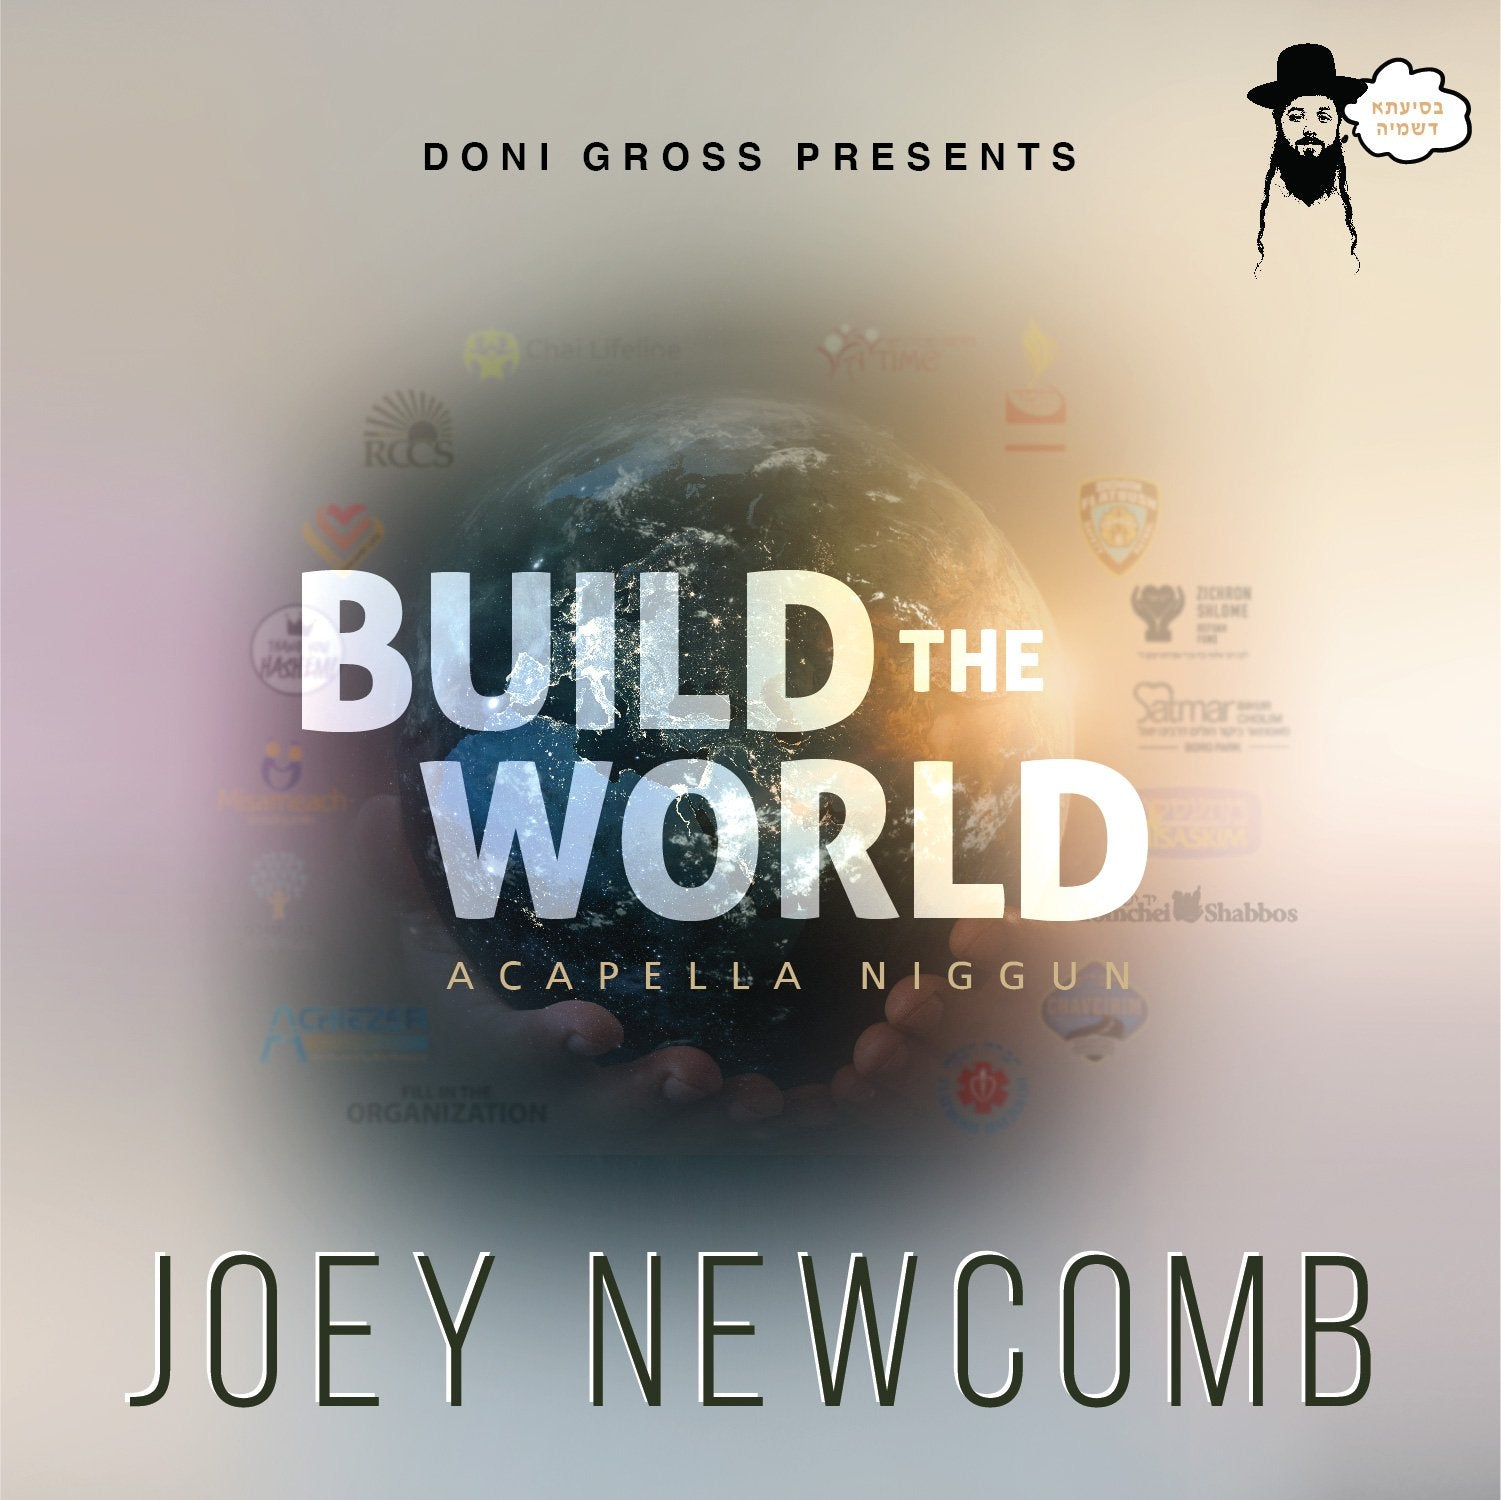 Joey Newcomb - Build The World (Acapella Single)